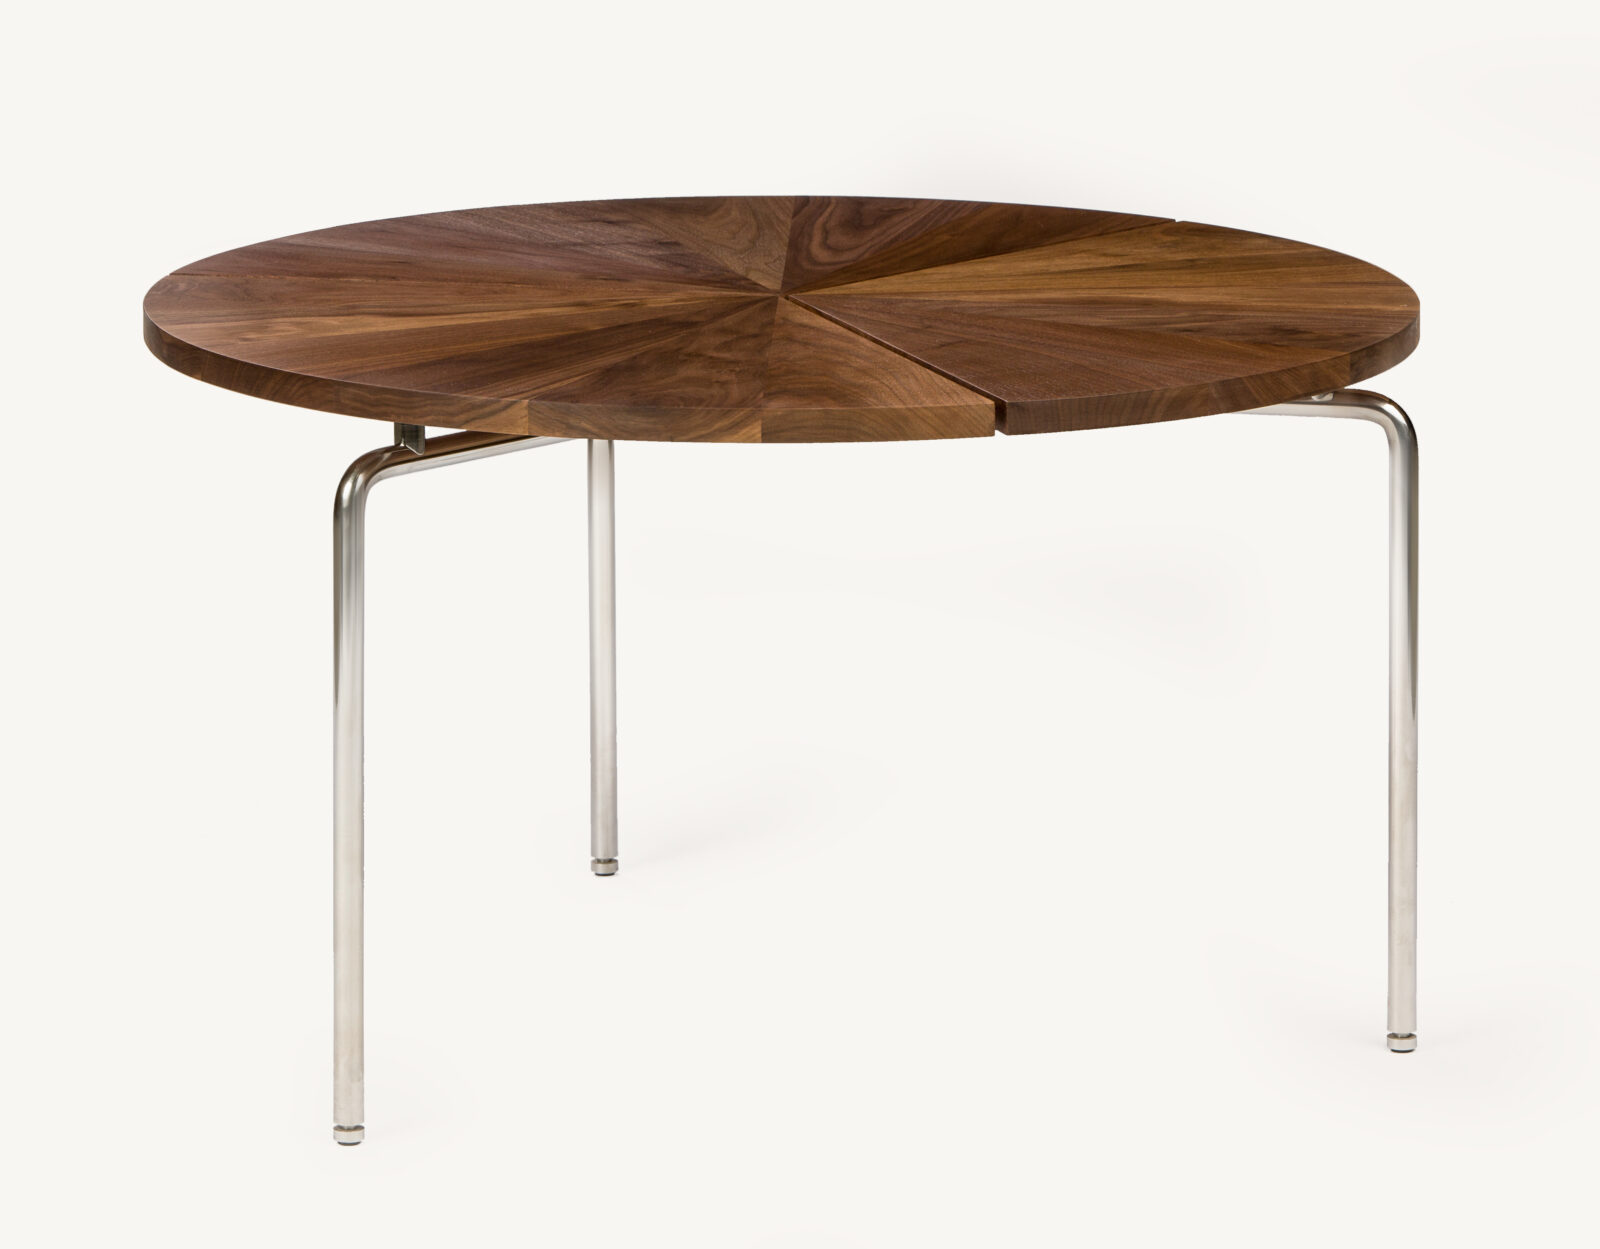 BassamFellows CB-36 Circular Coffee Table in solid Walnut and polished stainless steel base, credit ELDON ZIMMERMAN